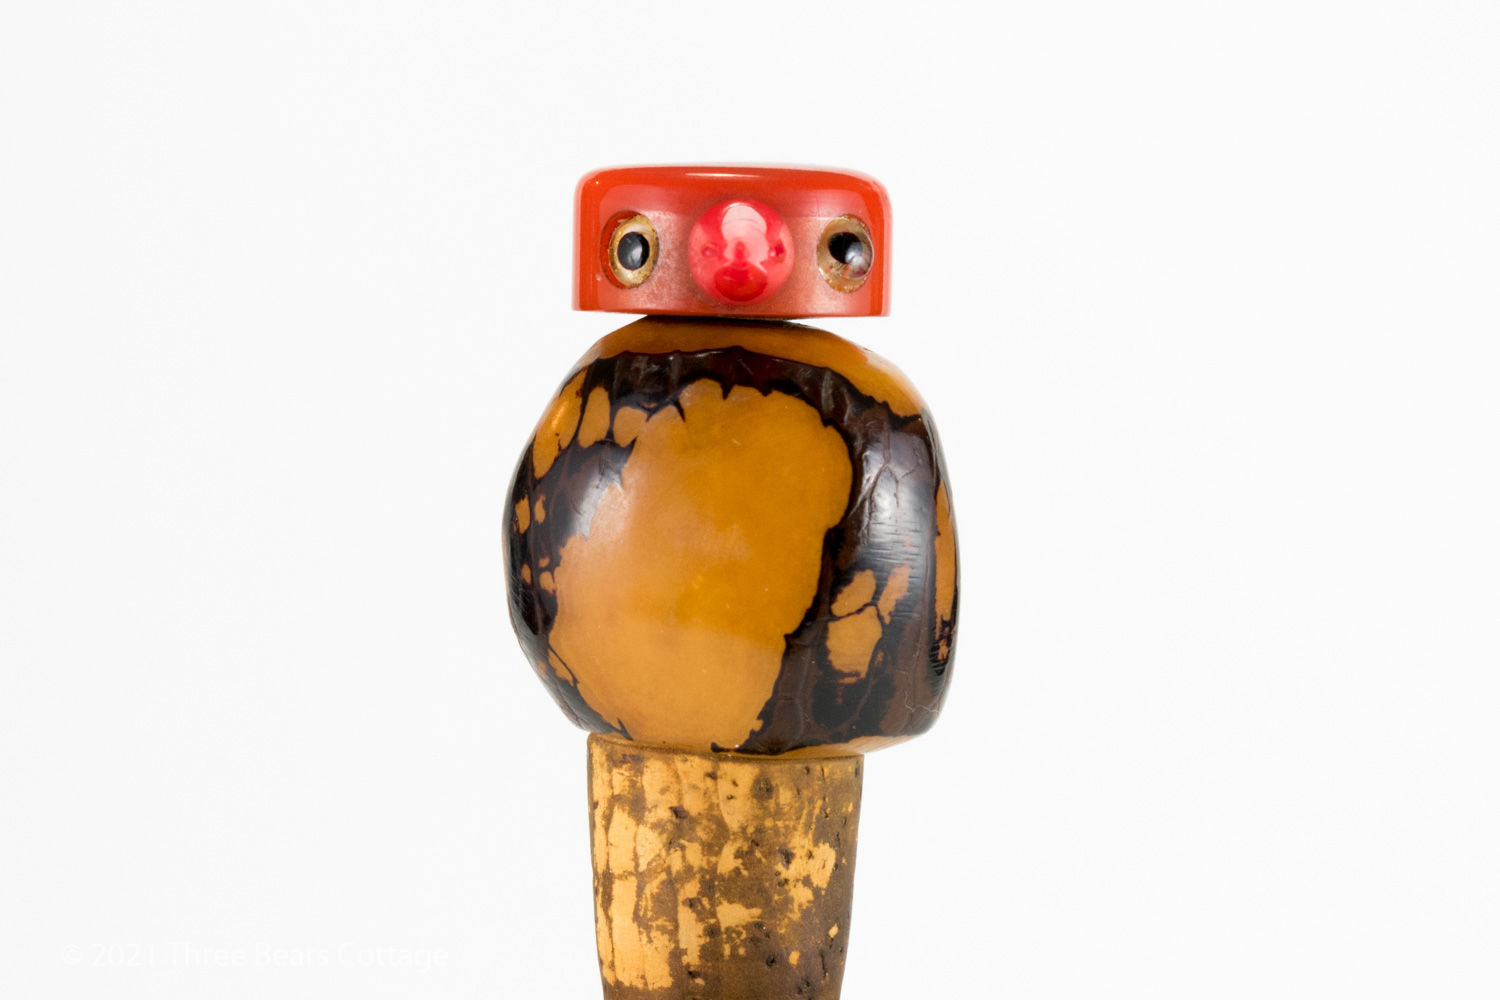 Close up side view 1 of Tagua Nut bird bottle stopper